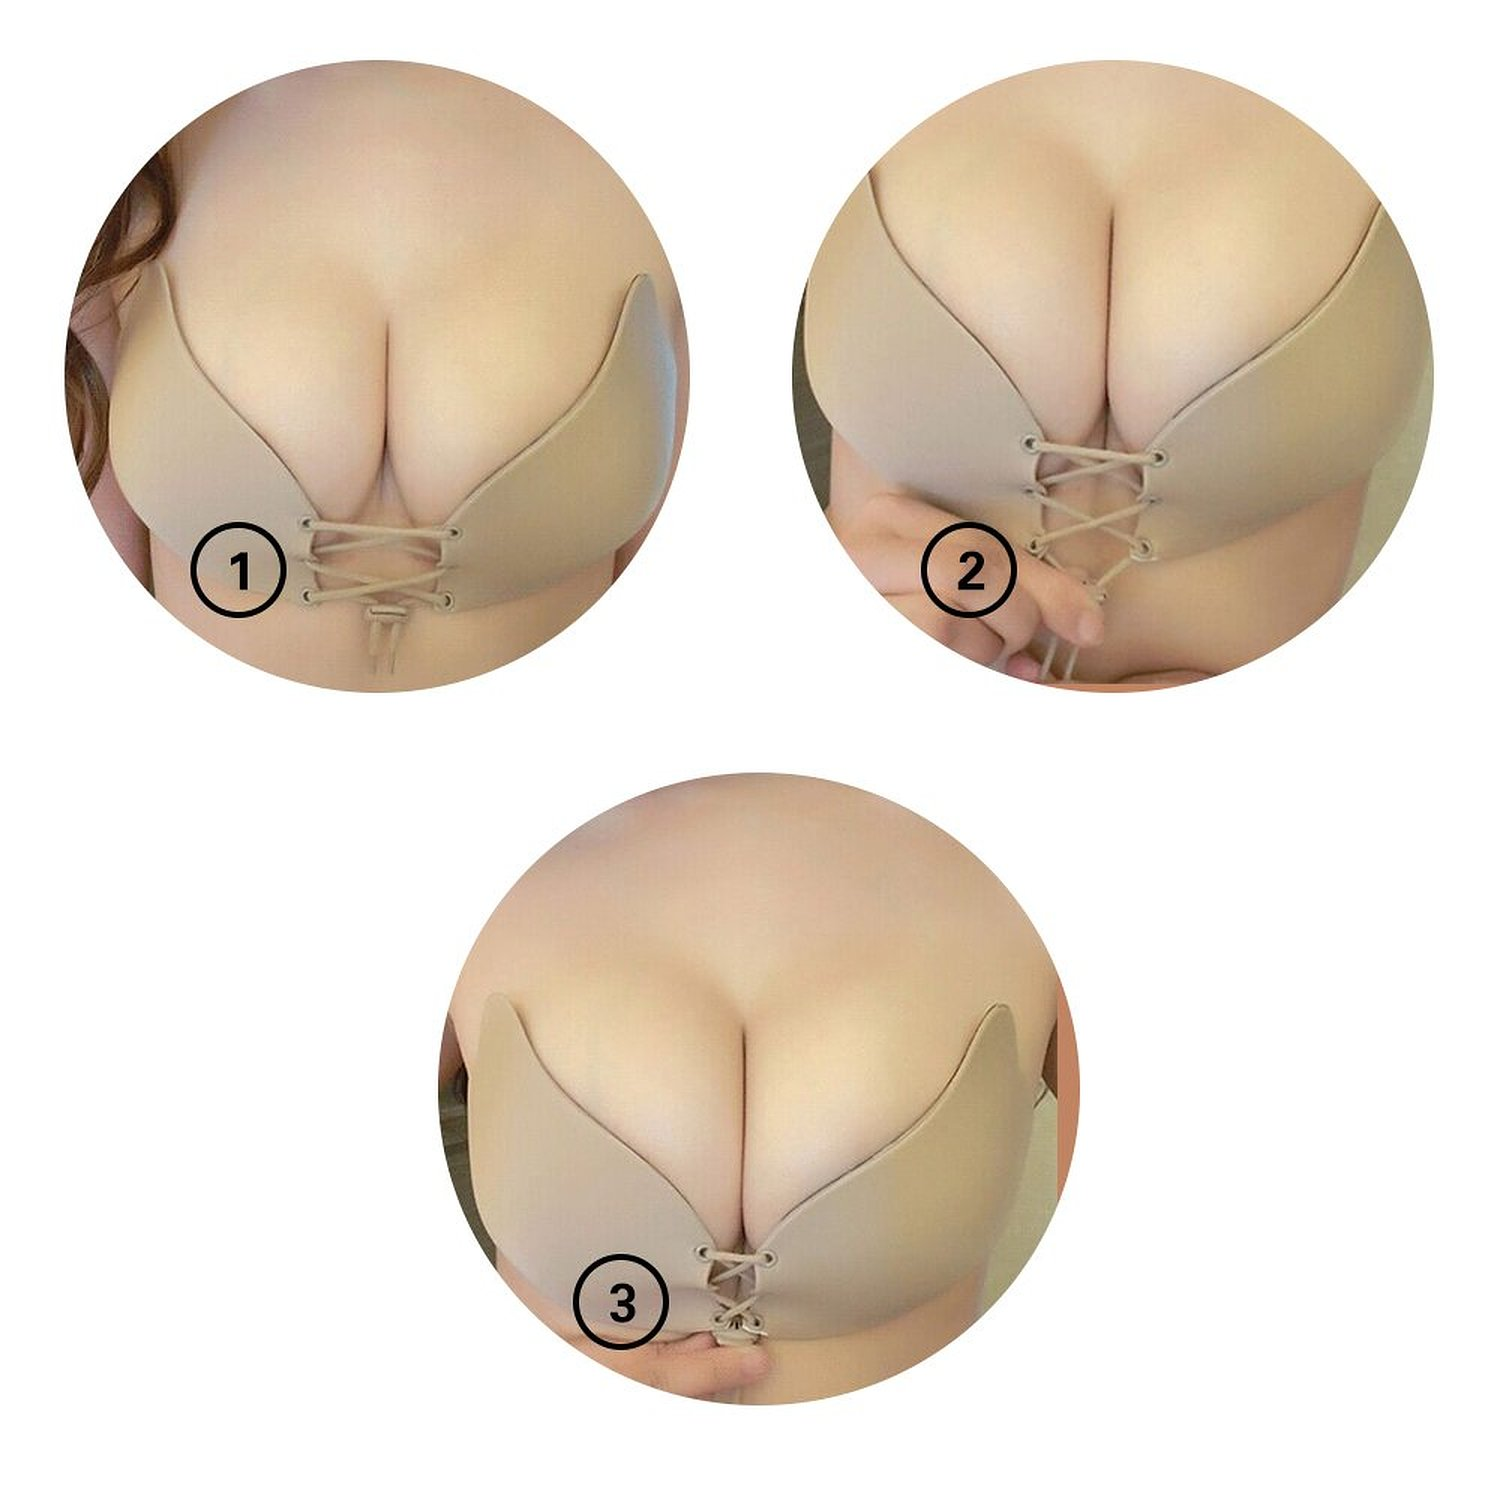 O 39 vinna nubra invisible push up bra women 39 s strapless for Best adhesive bra for wedding dress